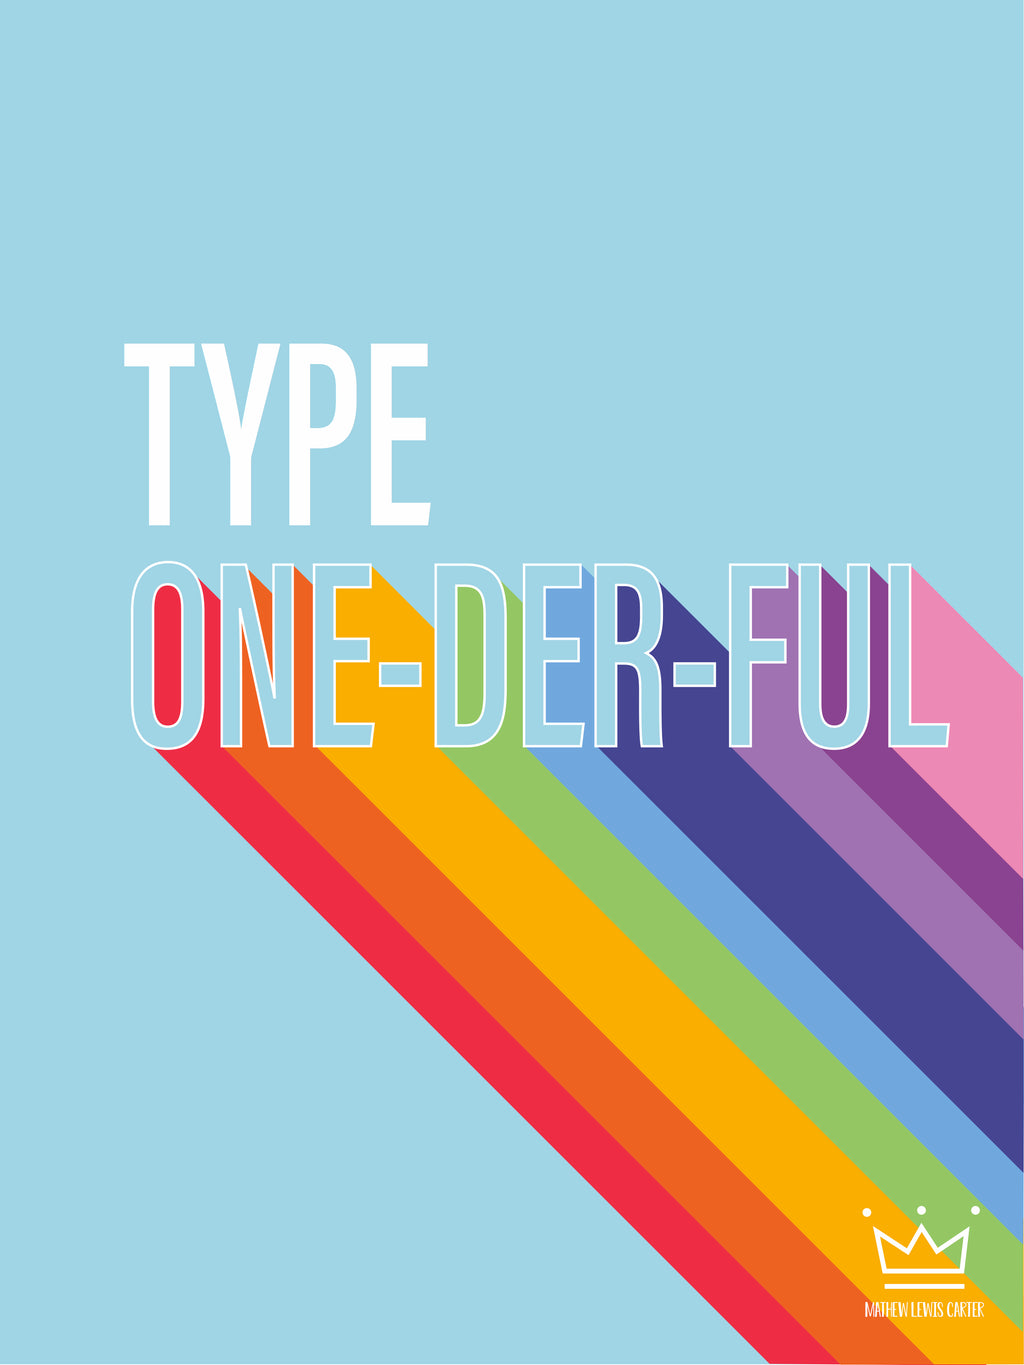 TYPE ONE-DER-FUL